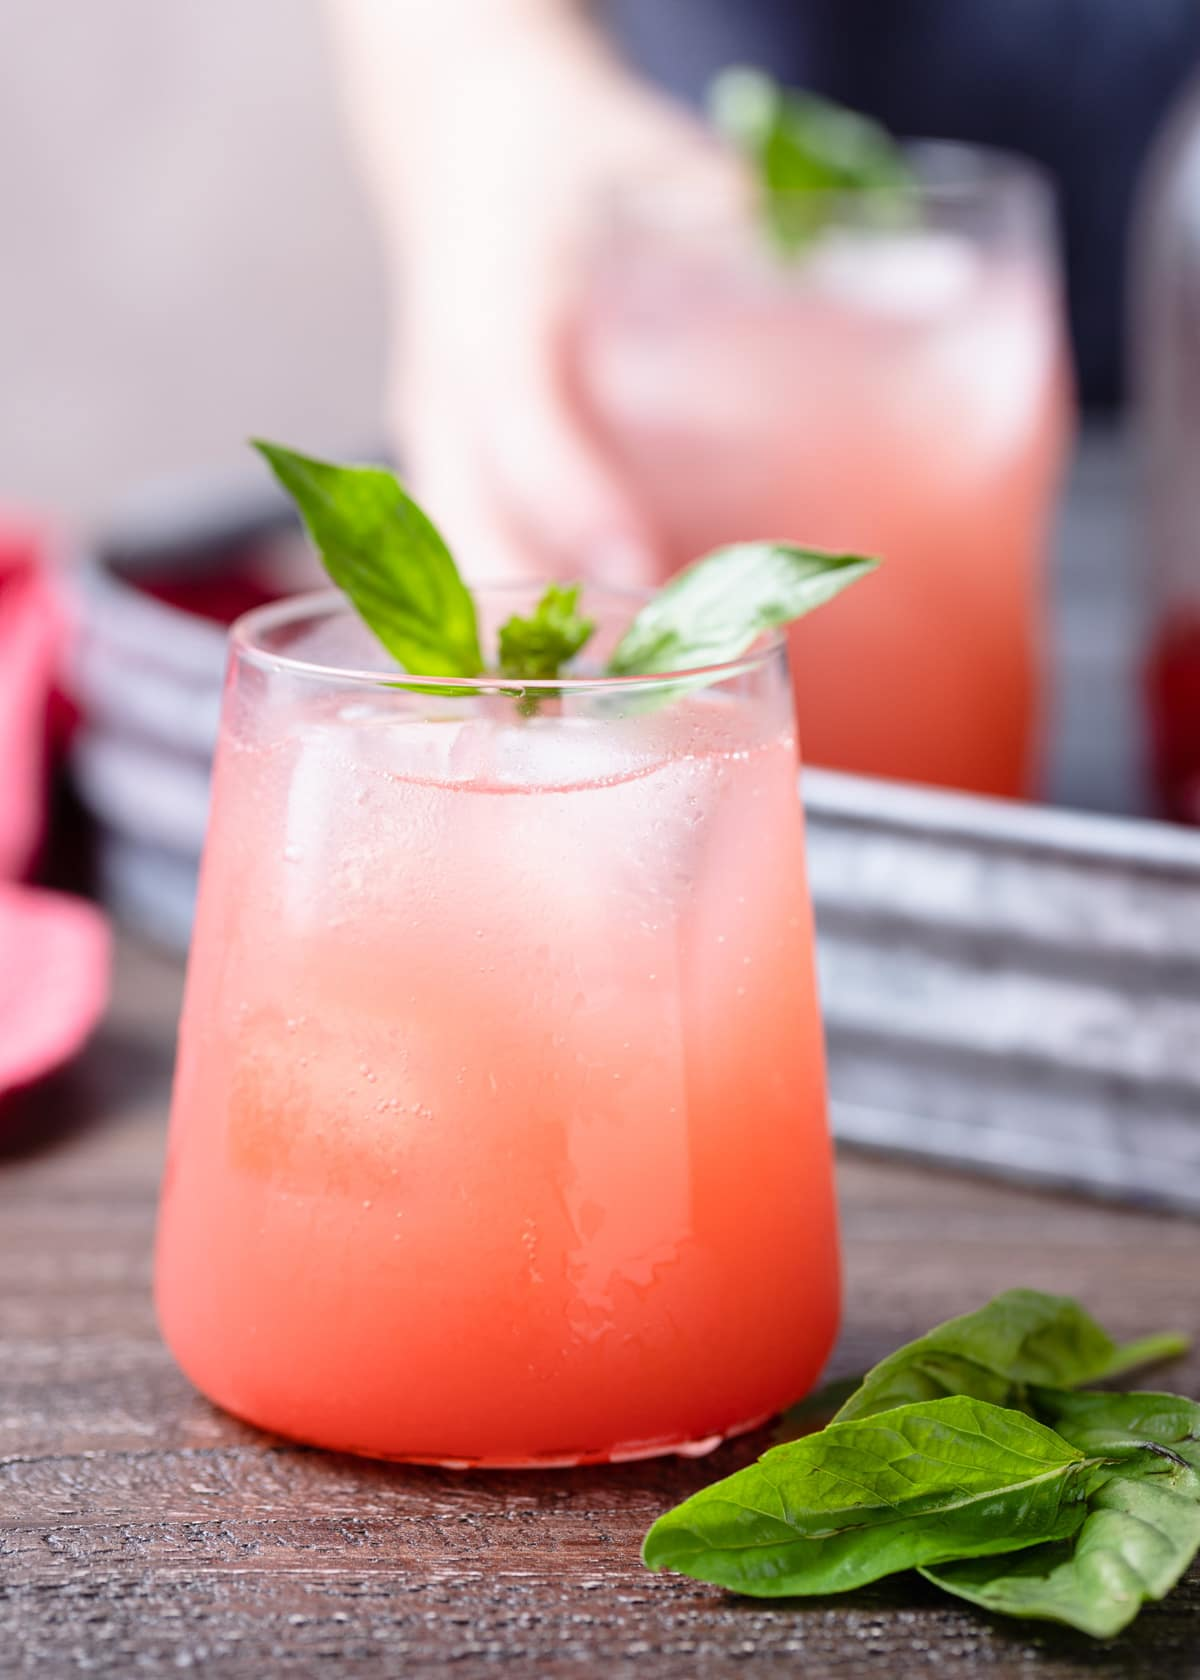 strawberry soda in a glass garnished with basil leaves on a wood board